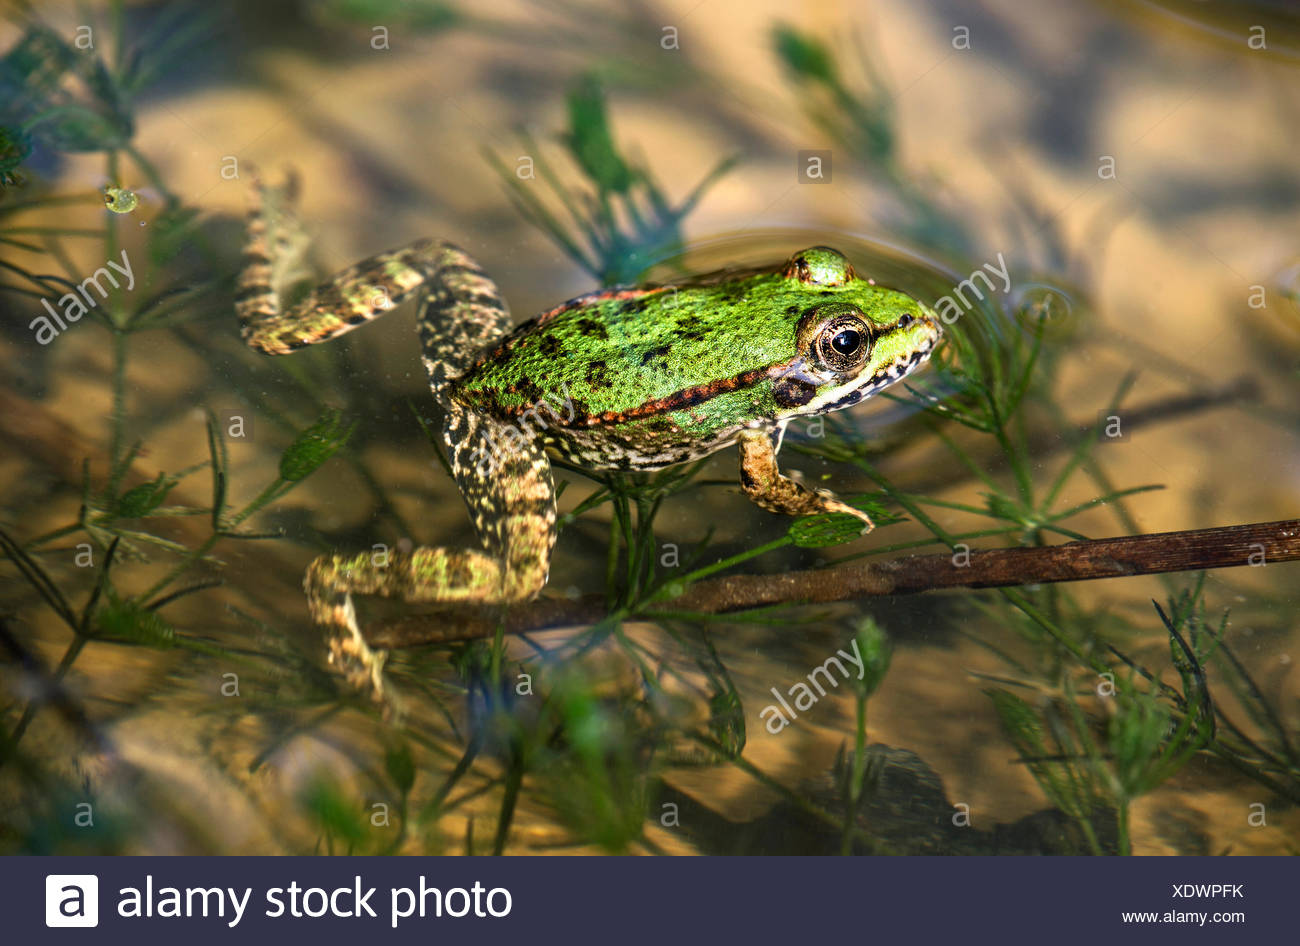 Edible Frog (Pelophylax esculentus) in water, Switzerland - Stock Image